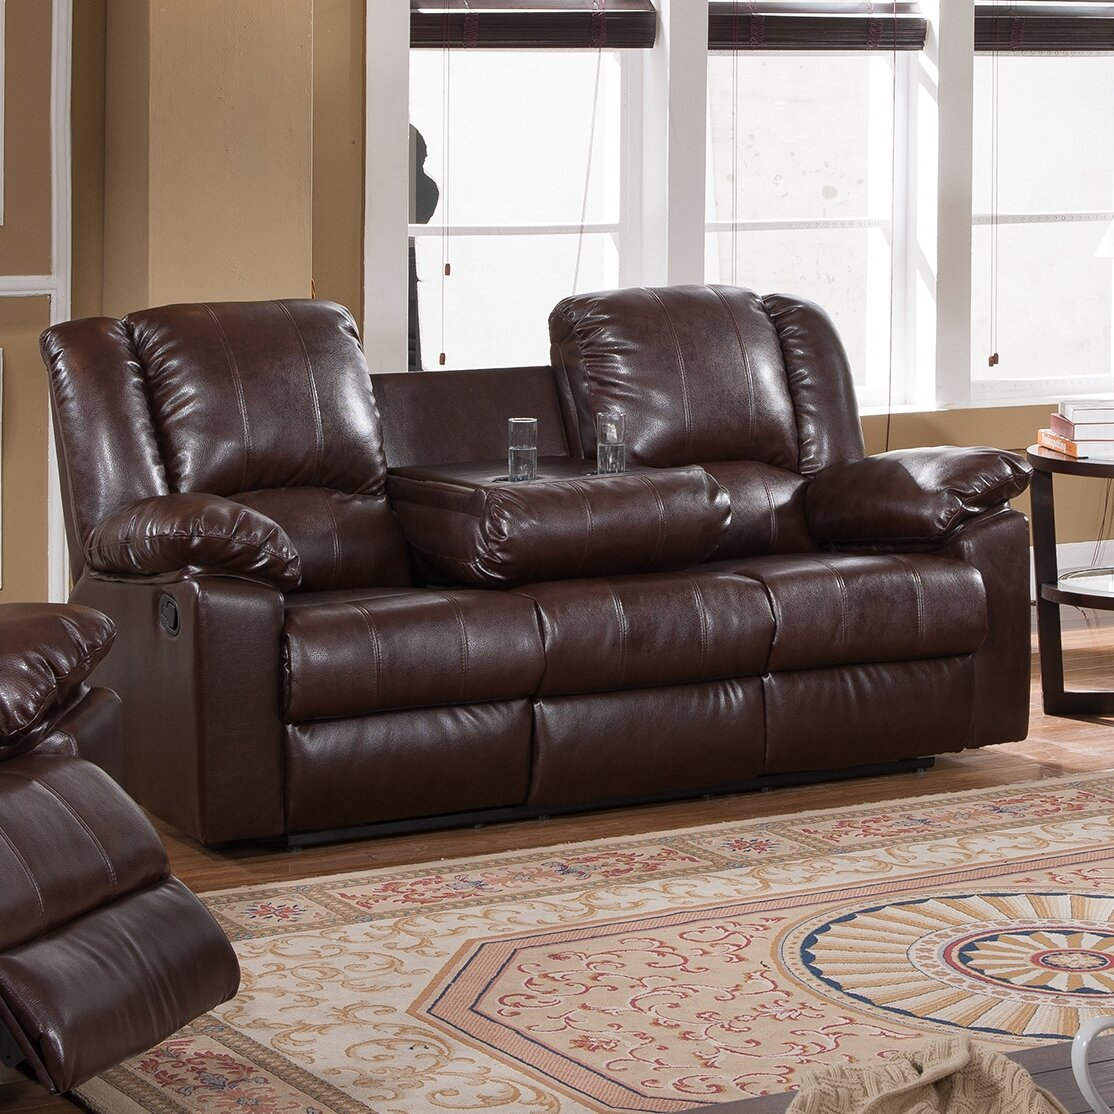 Milton Green Star Burgas Reclining Sofa With Drop-Down Cup